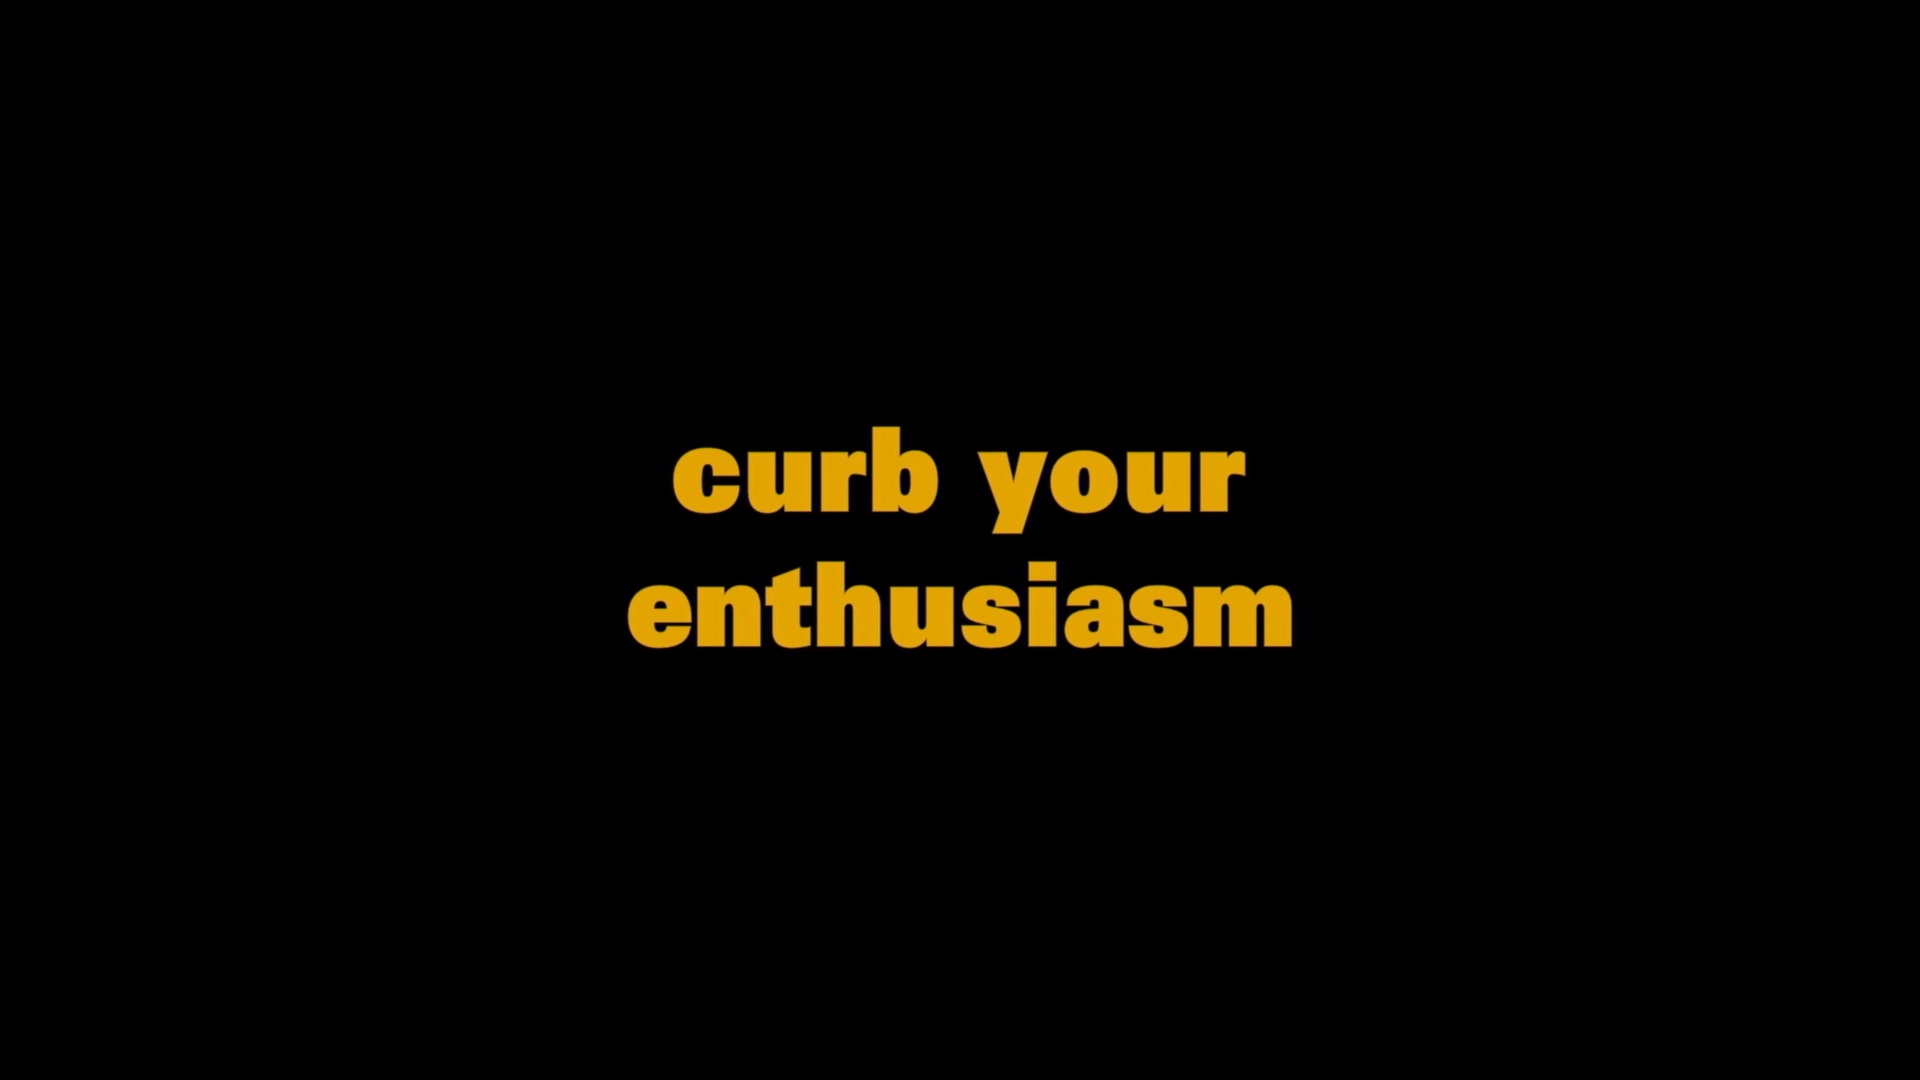 curb your enthusiasm season 7 episode 4 watch online